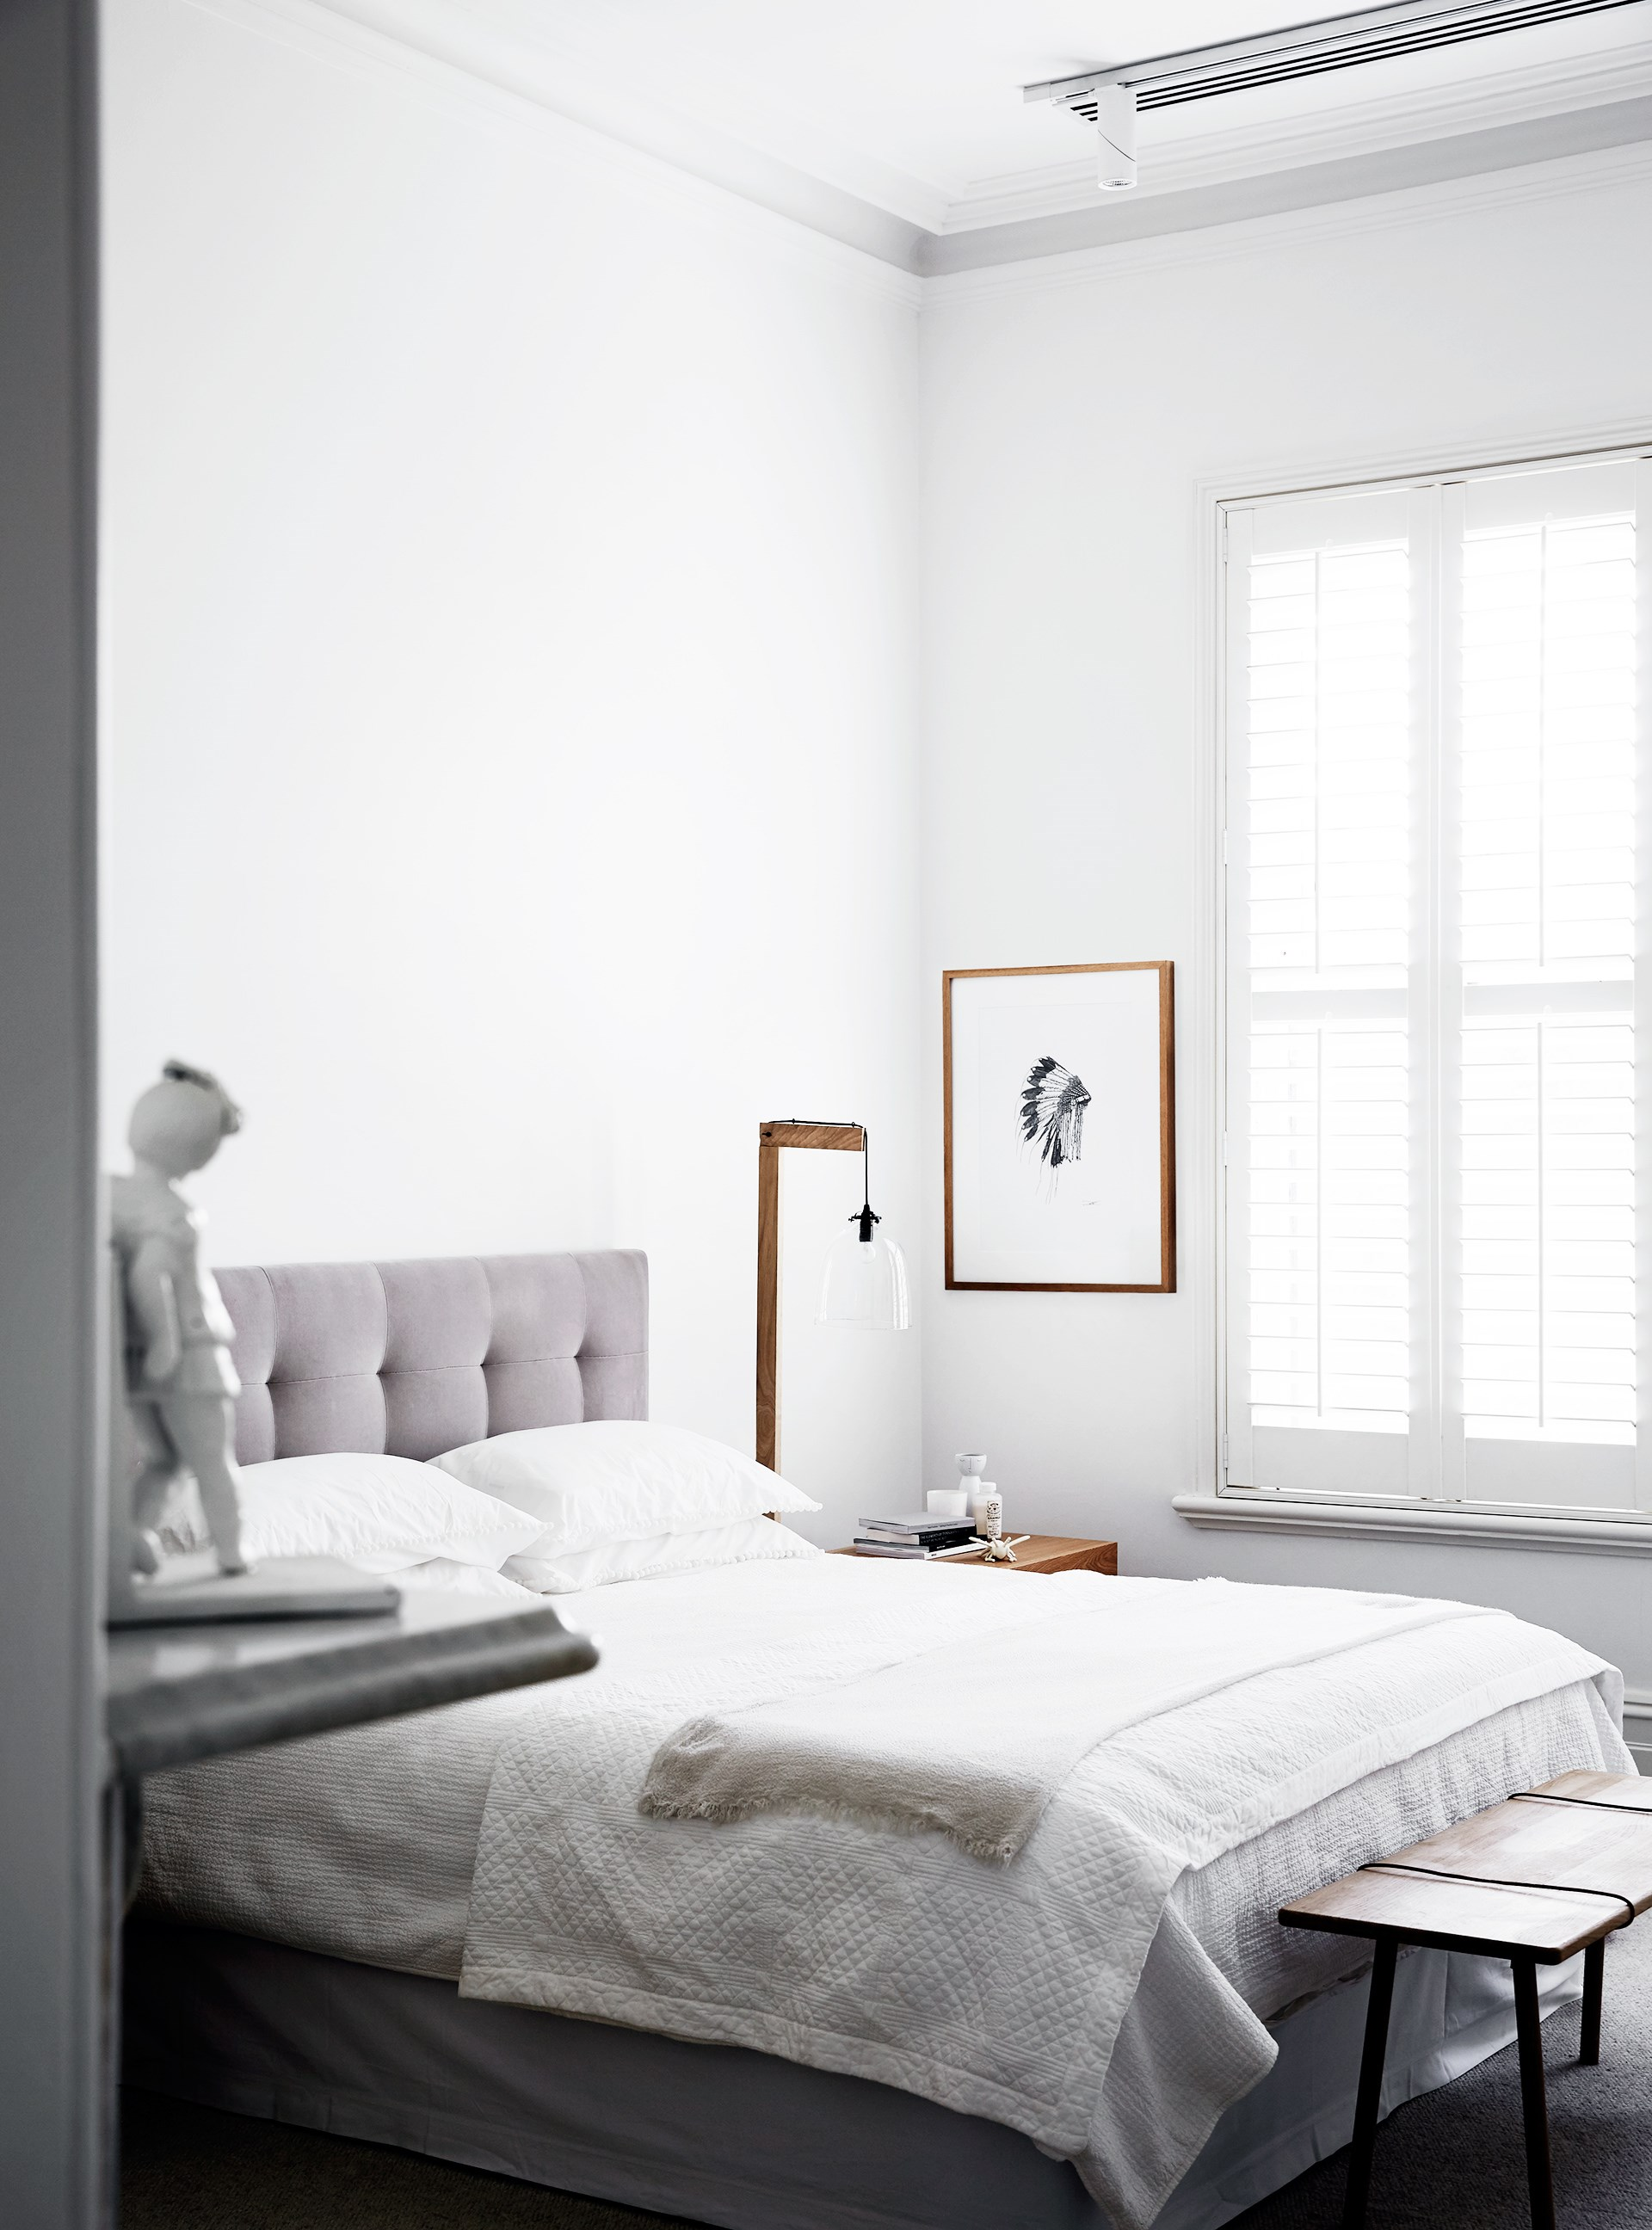 "Whisper white is a fool-proof [simple bedroom decorating idea](https://www.homestolove.com.au/simple-bedroom-decorating-ideas-6947|target=""_blank""), as seen in the bedroom of this [light-hearted luxury home](http://www.homestolove.com.au/a-light-hearted-luxury-home-3944). Photo: Sharyn Cairns"